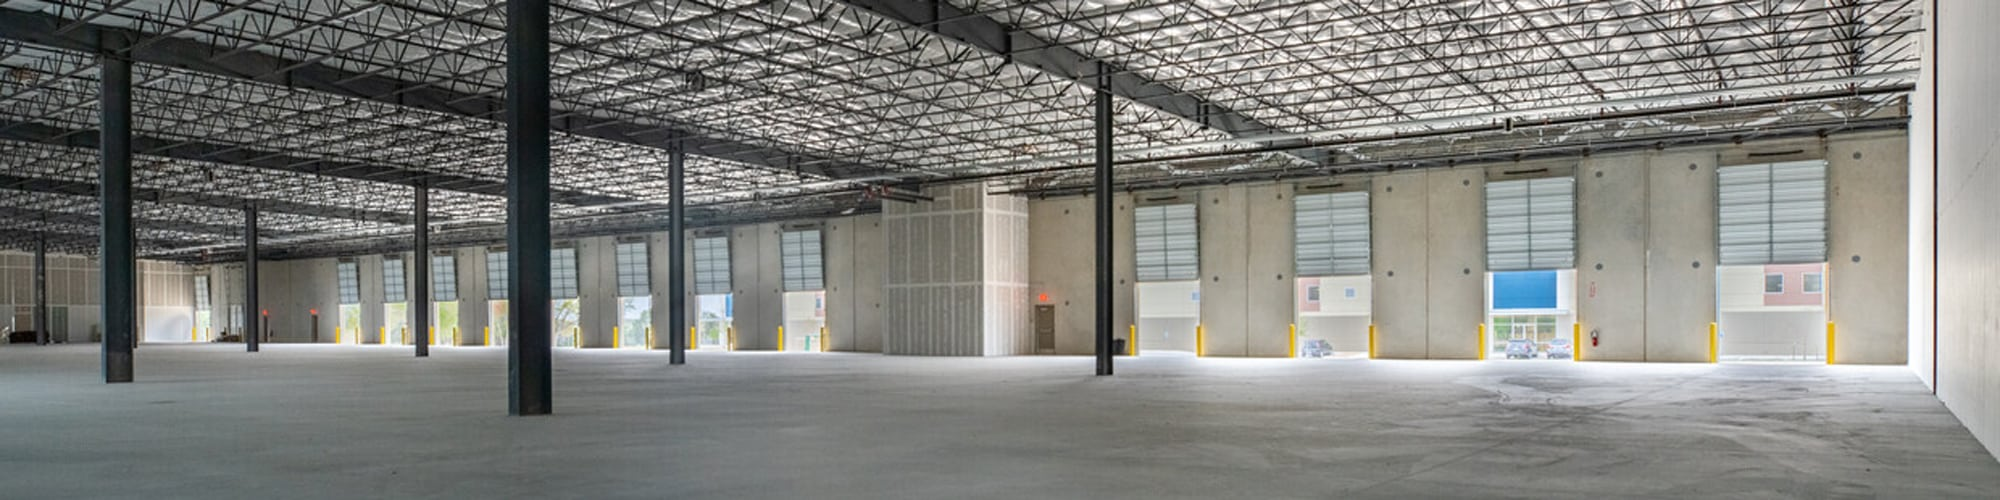 Brushy Creek Corporate Center - Building 1 - Available Warehouse Space